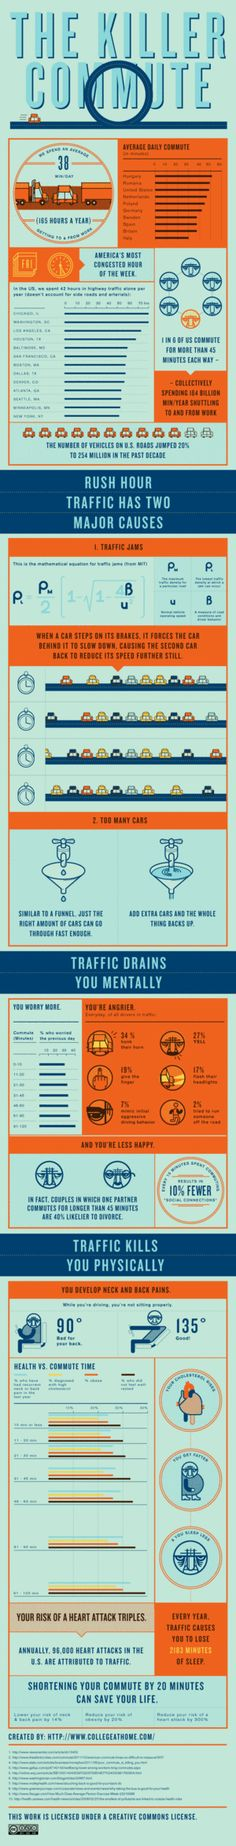 I need to cut down my commute time. It's killing me. Literally, according to this infographic.